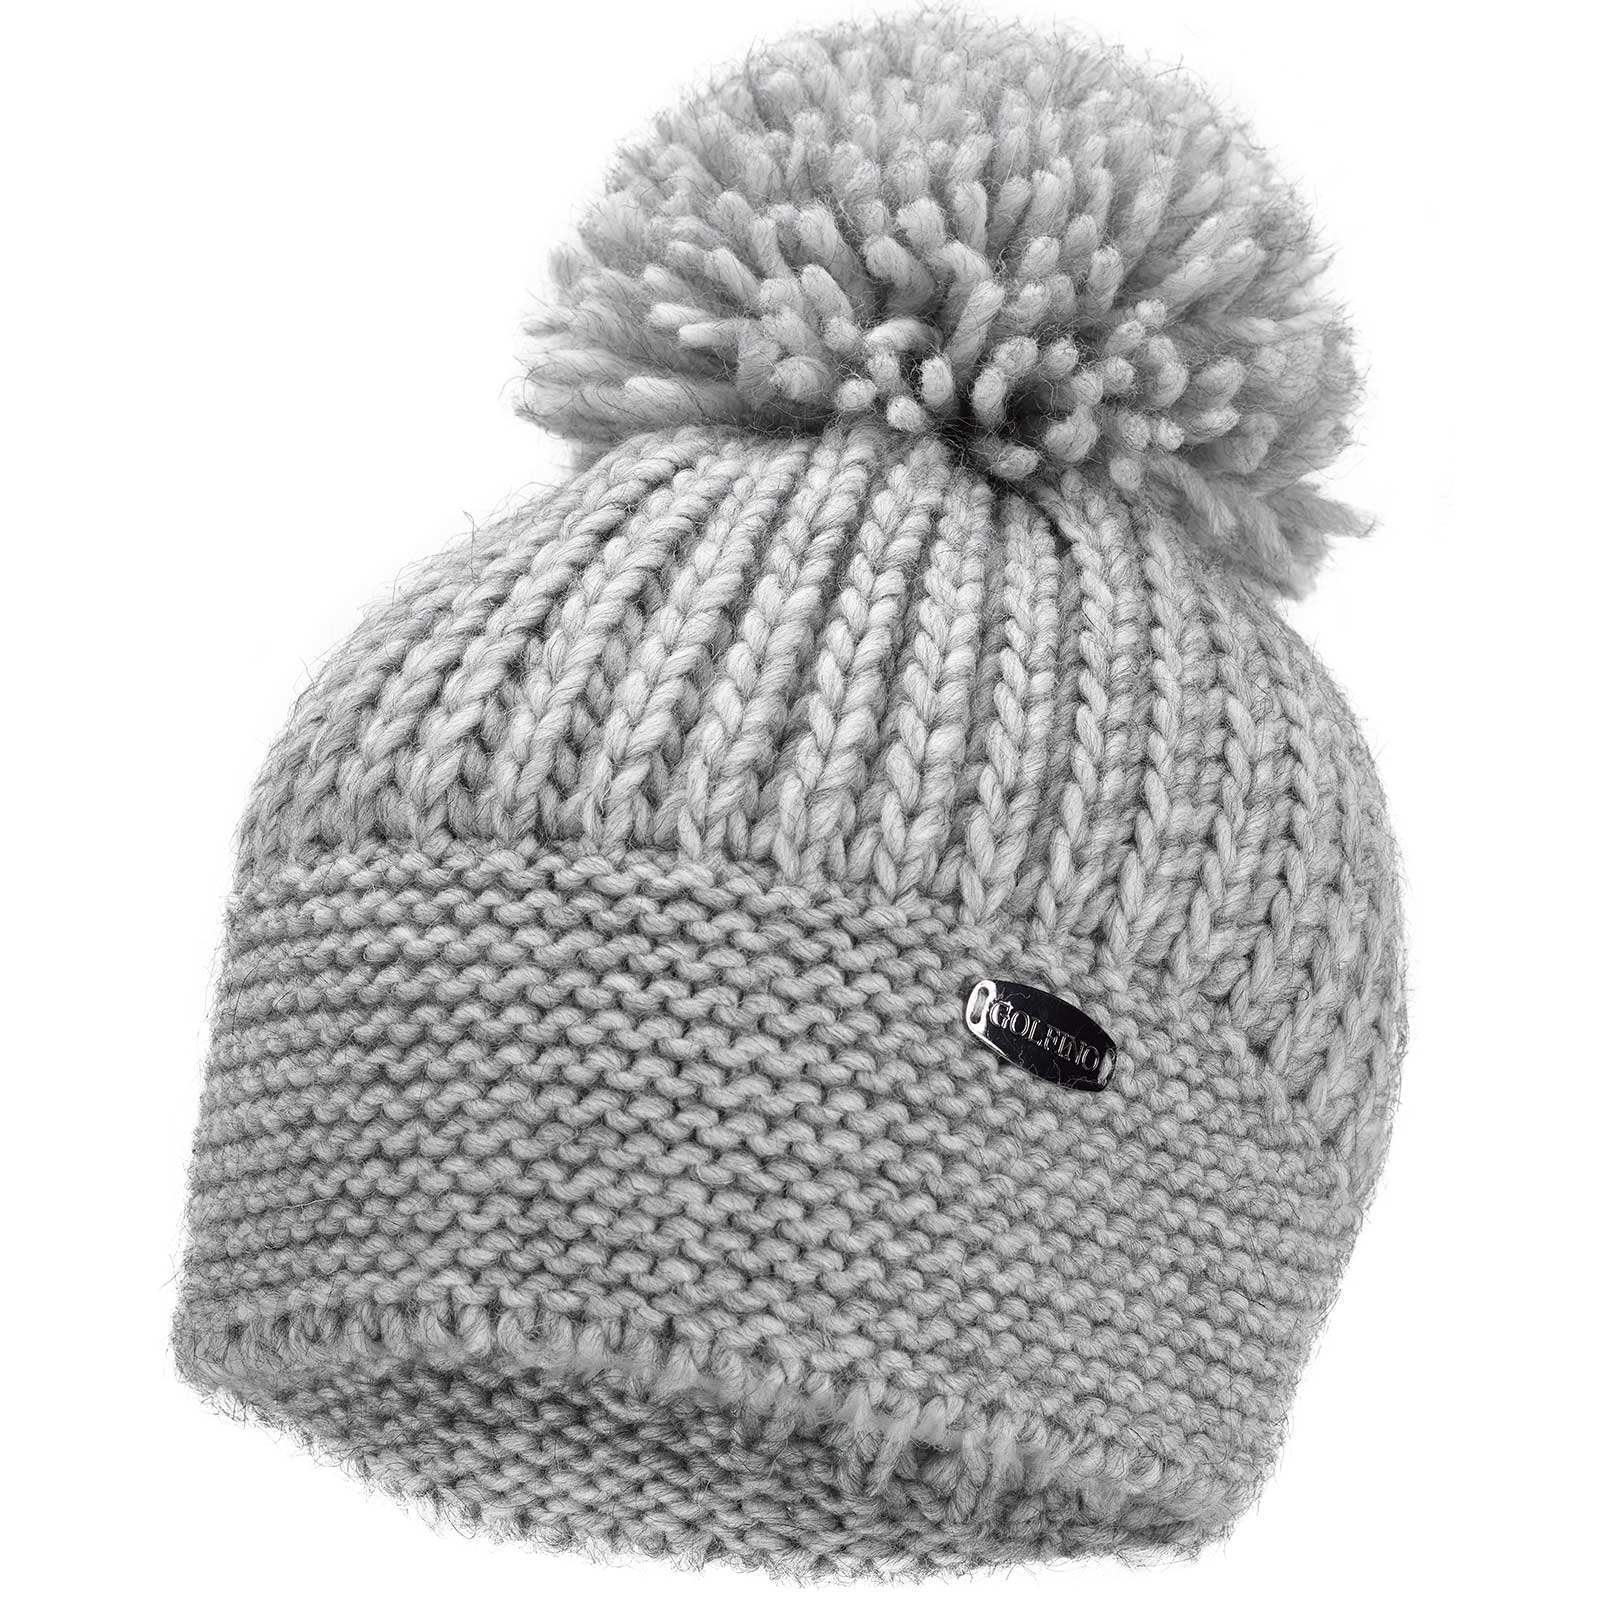 Ladies' knitted functional hat with pompom